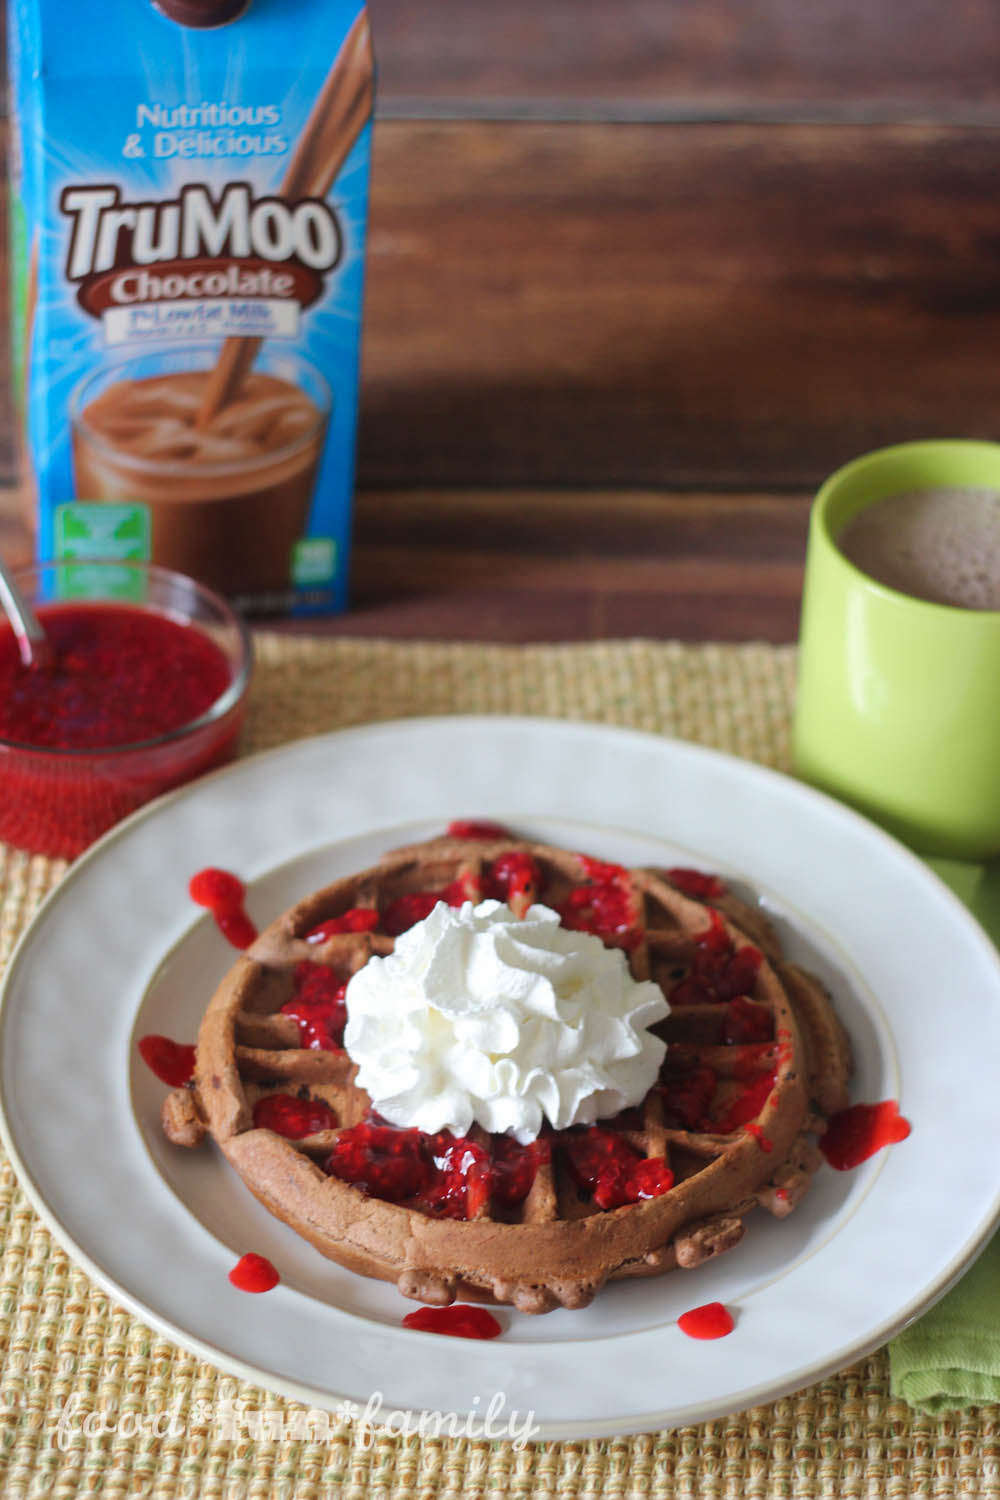 These Triple Chocolate Waffles with Raspberry Sauce are light and fluffy, with just the right amount of chocolate and sugar. Cocoa powder, TruMoo chocolate milk, and semi-sweet chocolate chips combine to make the perfect chocolate waffle for a special breakfast treat! They're delicious enough on their own, but with the addition of a homemade raspberry sauce, this is a Valentine's Day breakfast to die for!